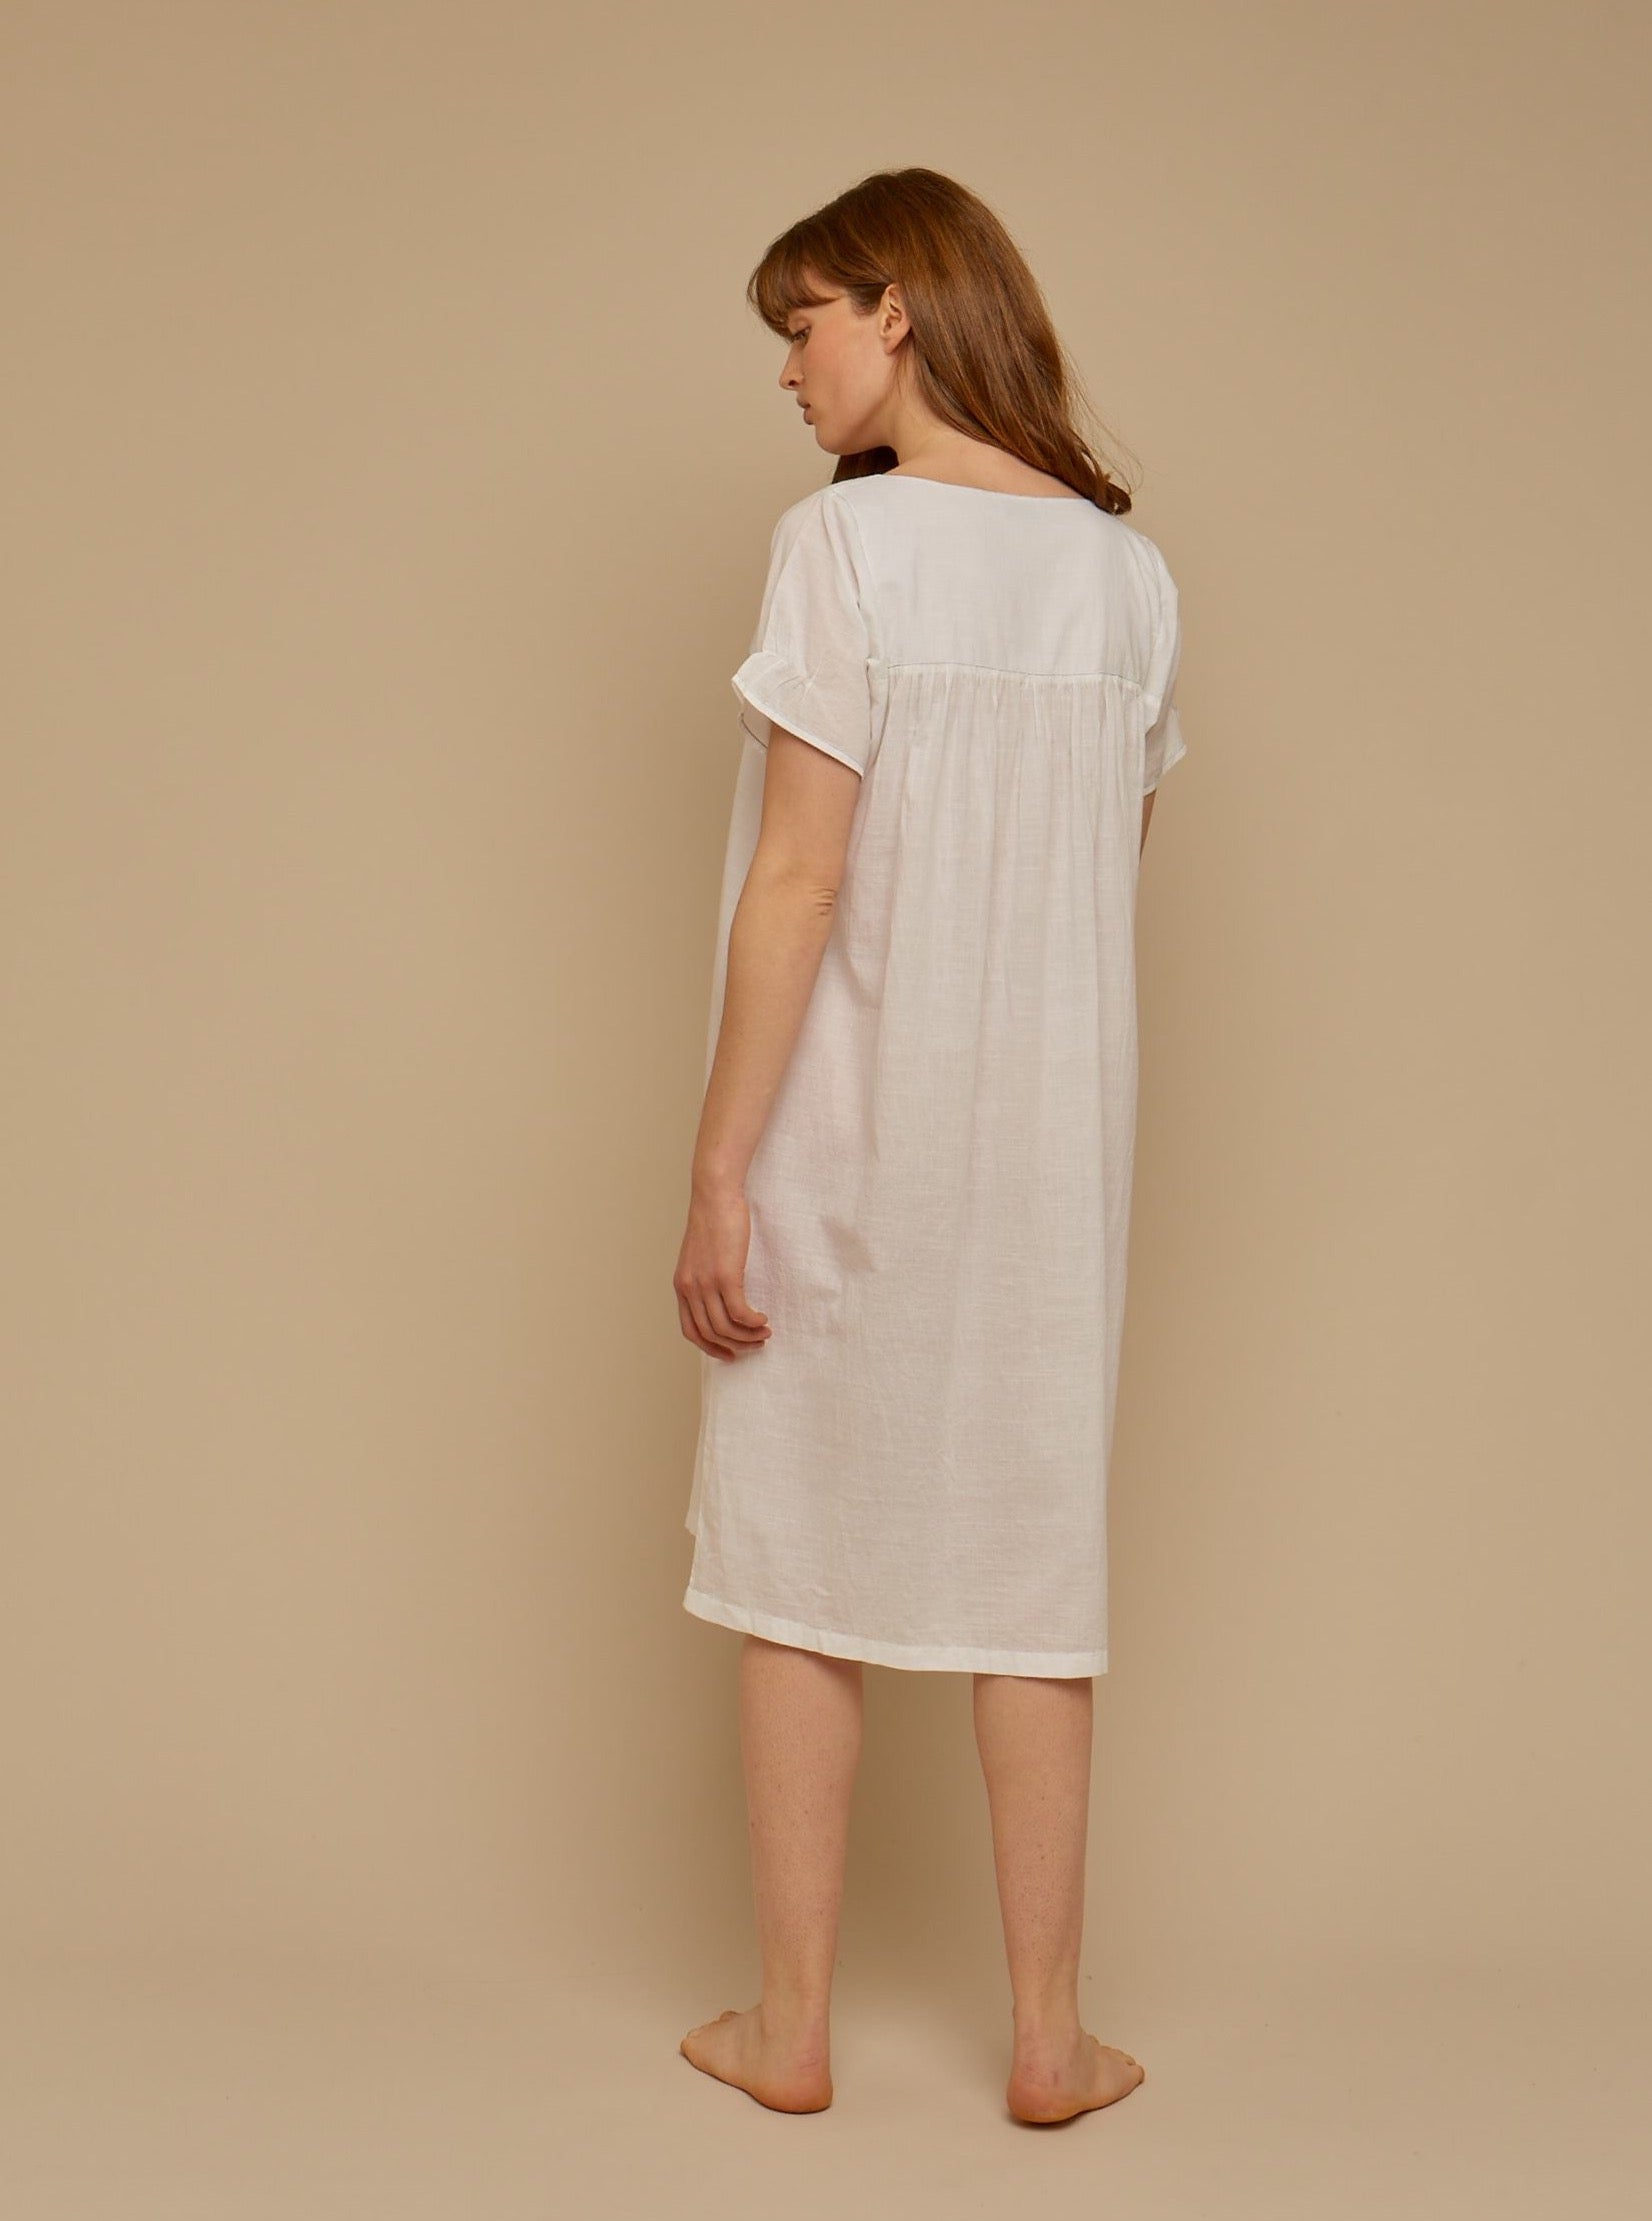 Nightgown 16 Maria